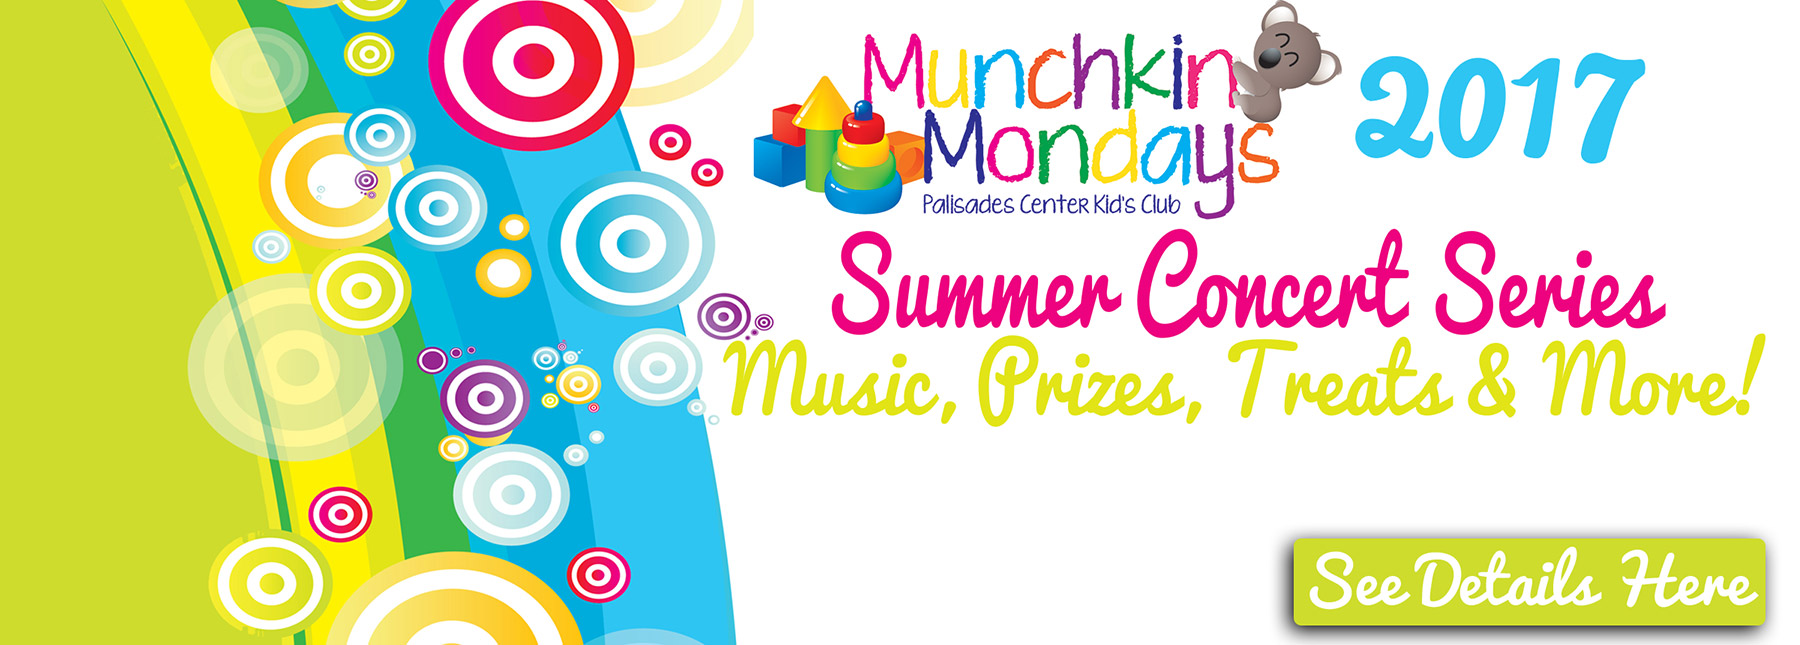 Munchkin Mondays - Palisades Center Kid's Club - Summer Concert Series 2017 - Music, Prizes, Treats & More!